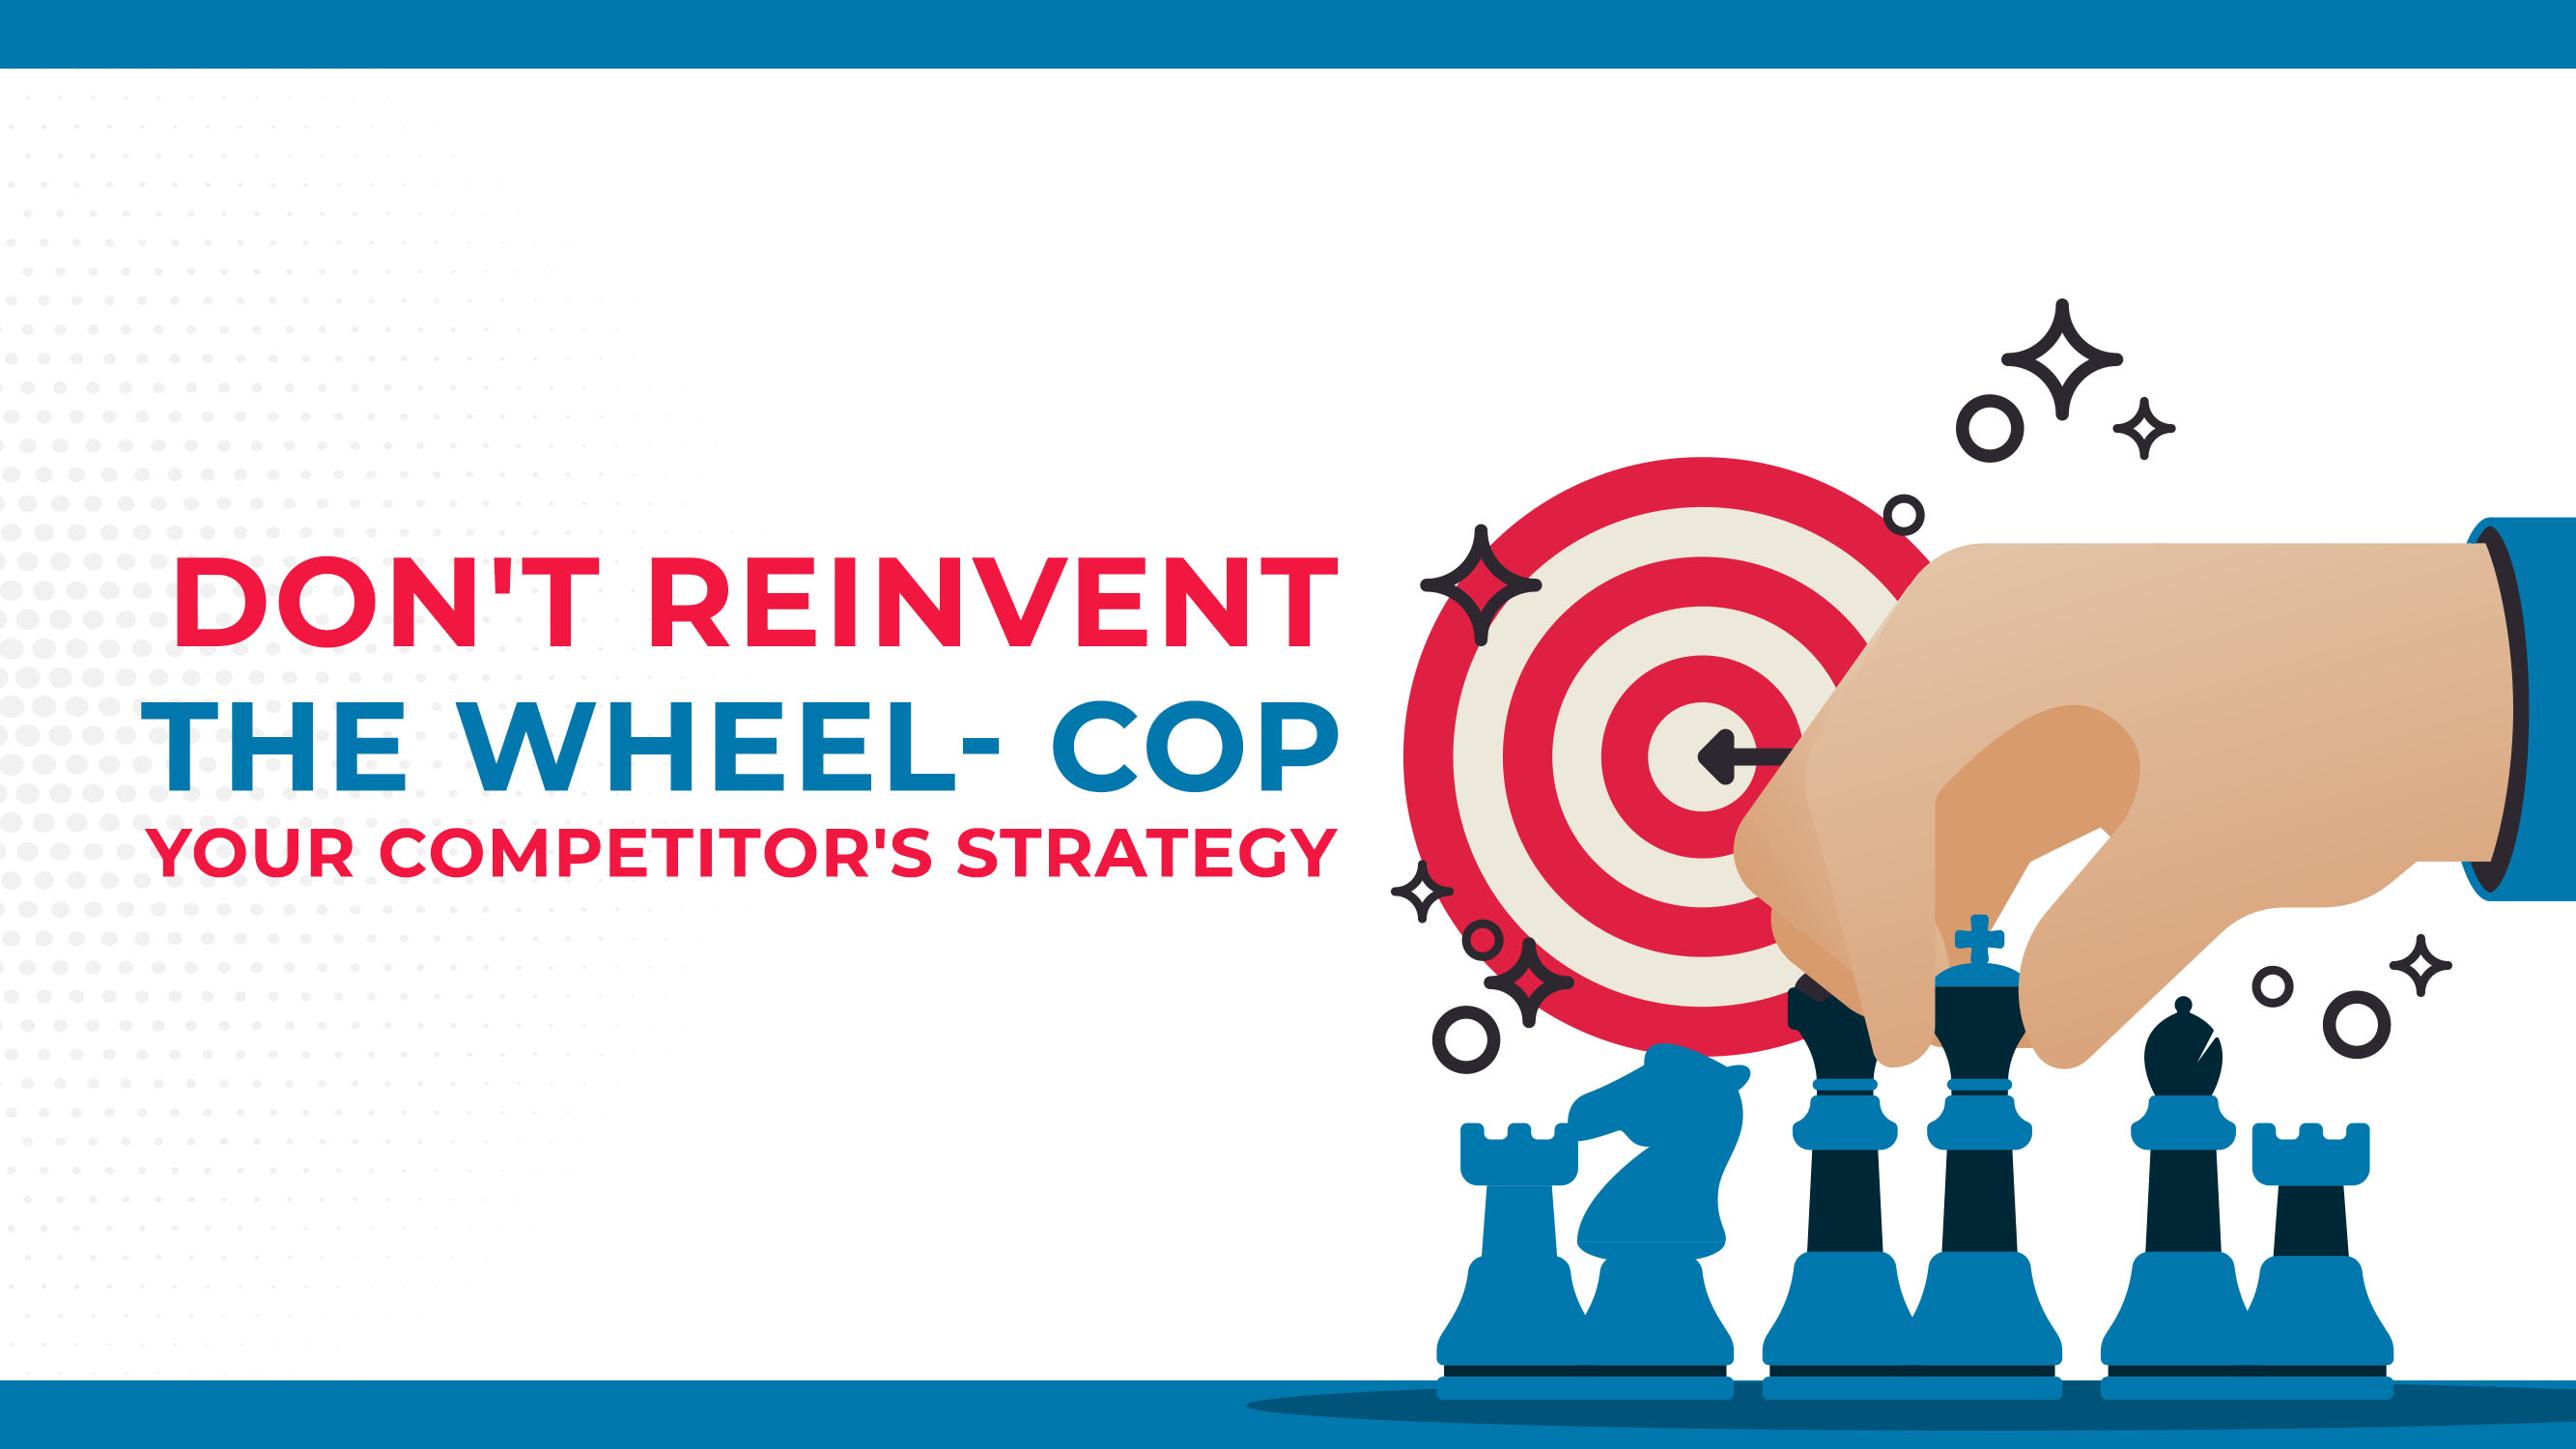 Don't Reinvent the Wheel—Cop Your Competitor's Strategy